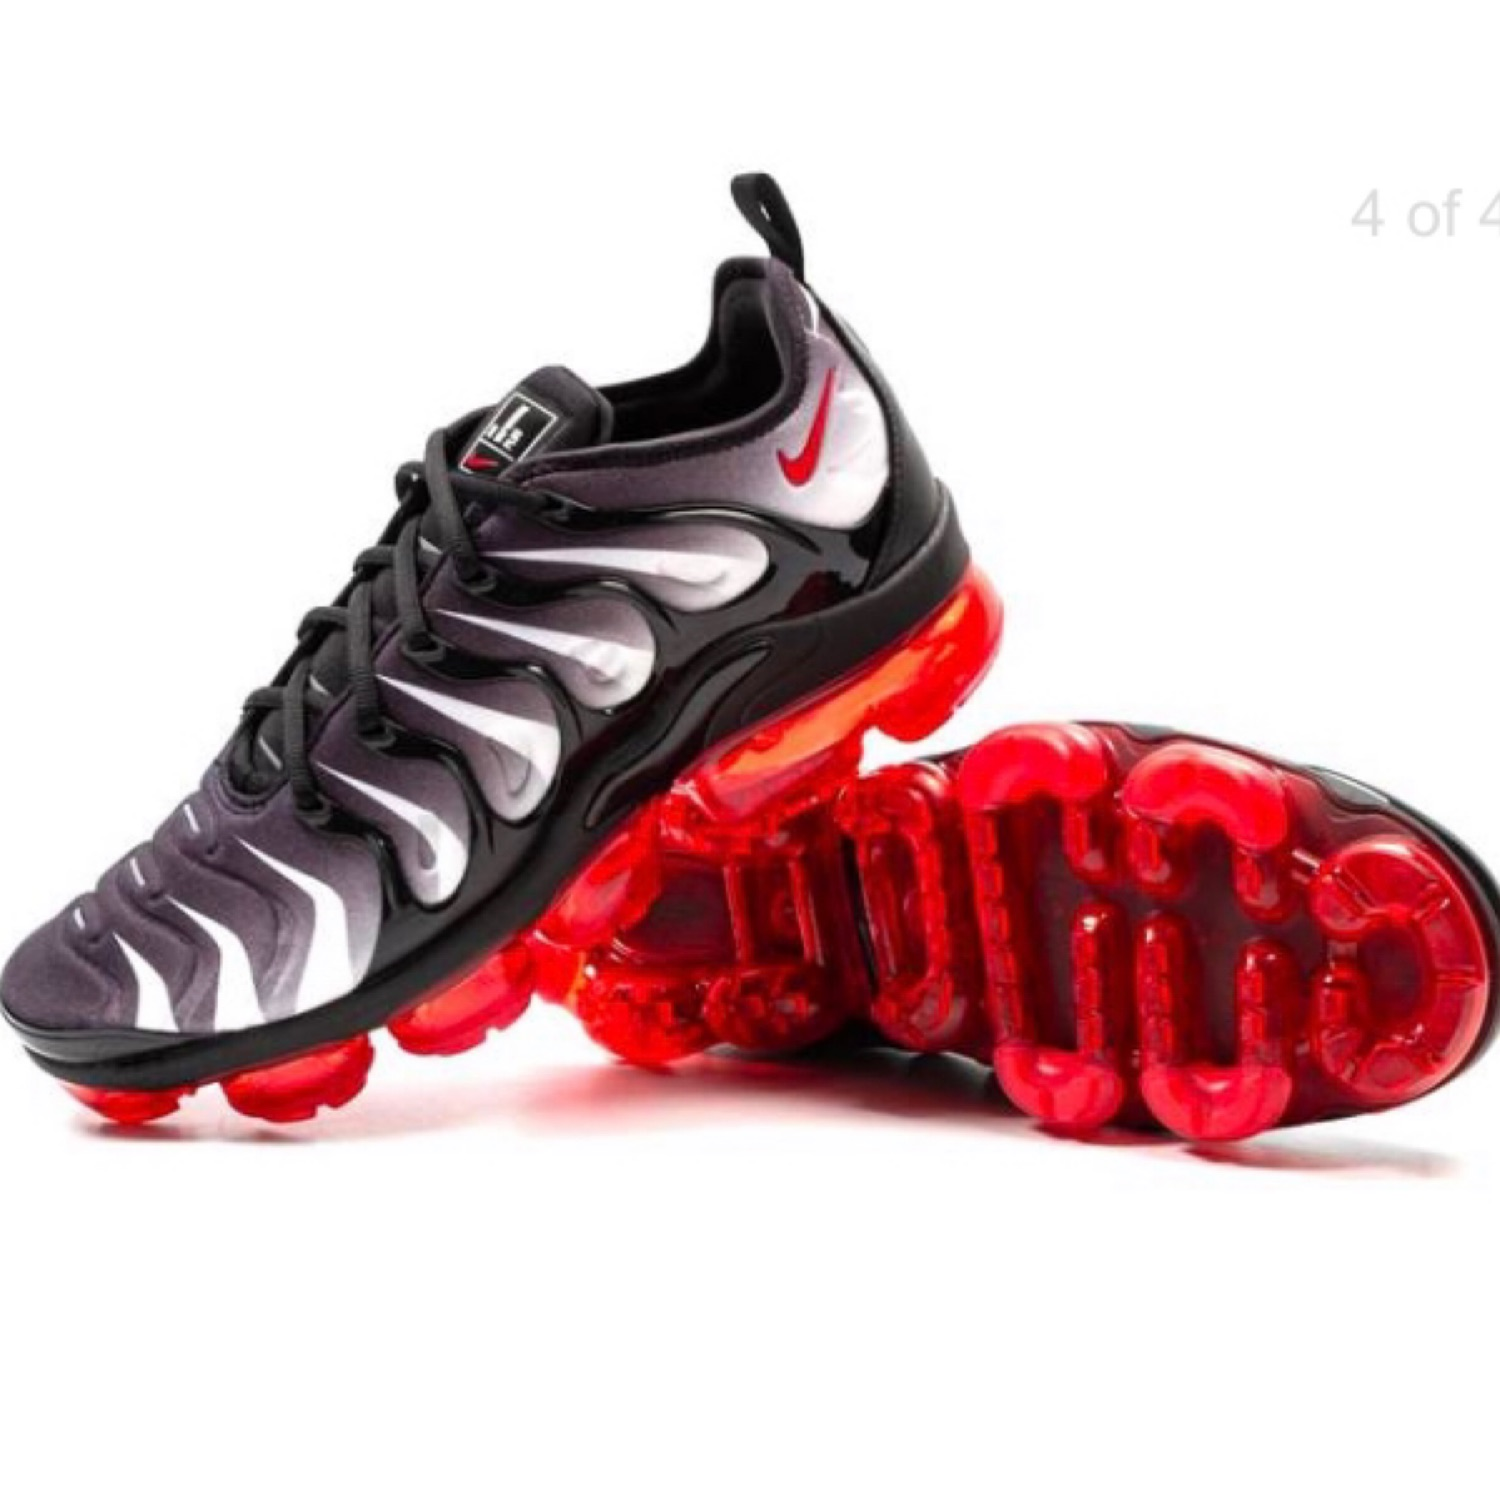 """new style 1851e b49a1 Nike Air Vapormax Plus """"Red Toothed Shark"""" Sz. 8.5"""